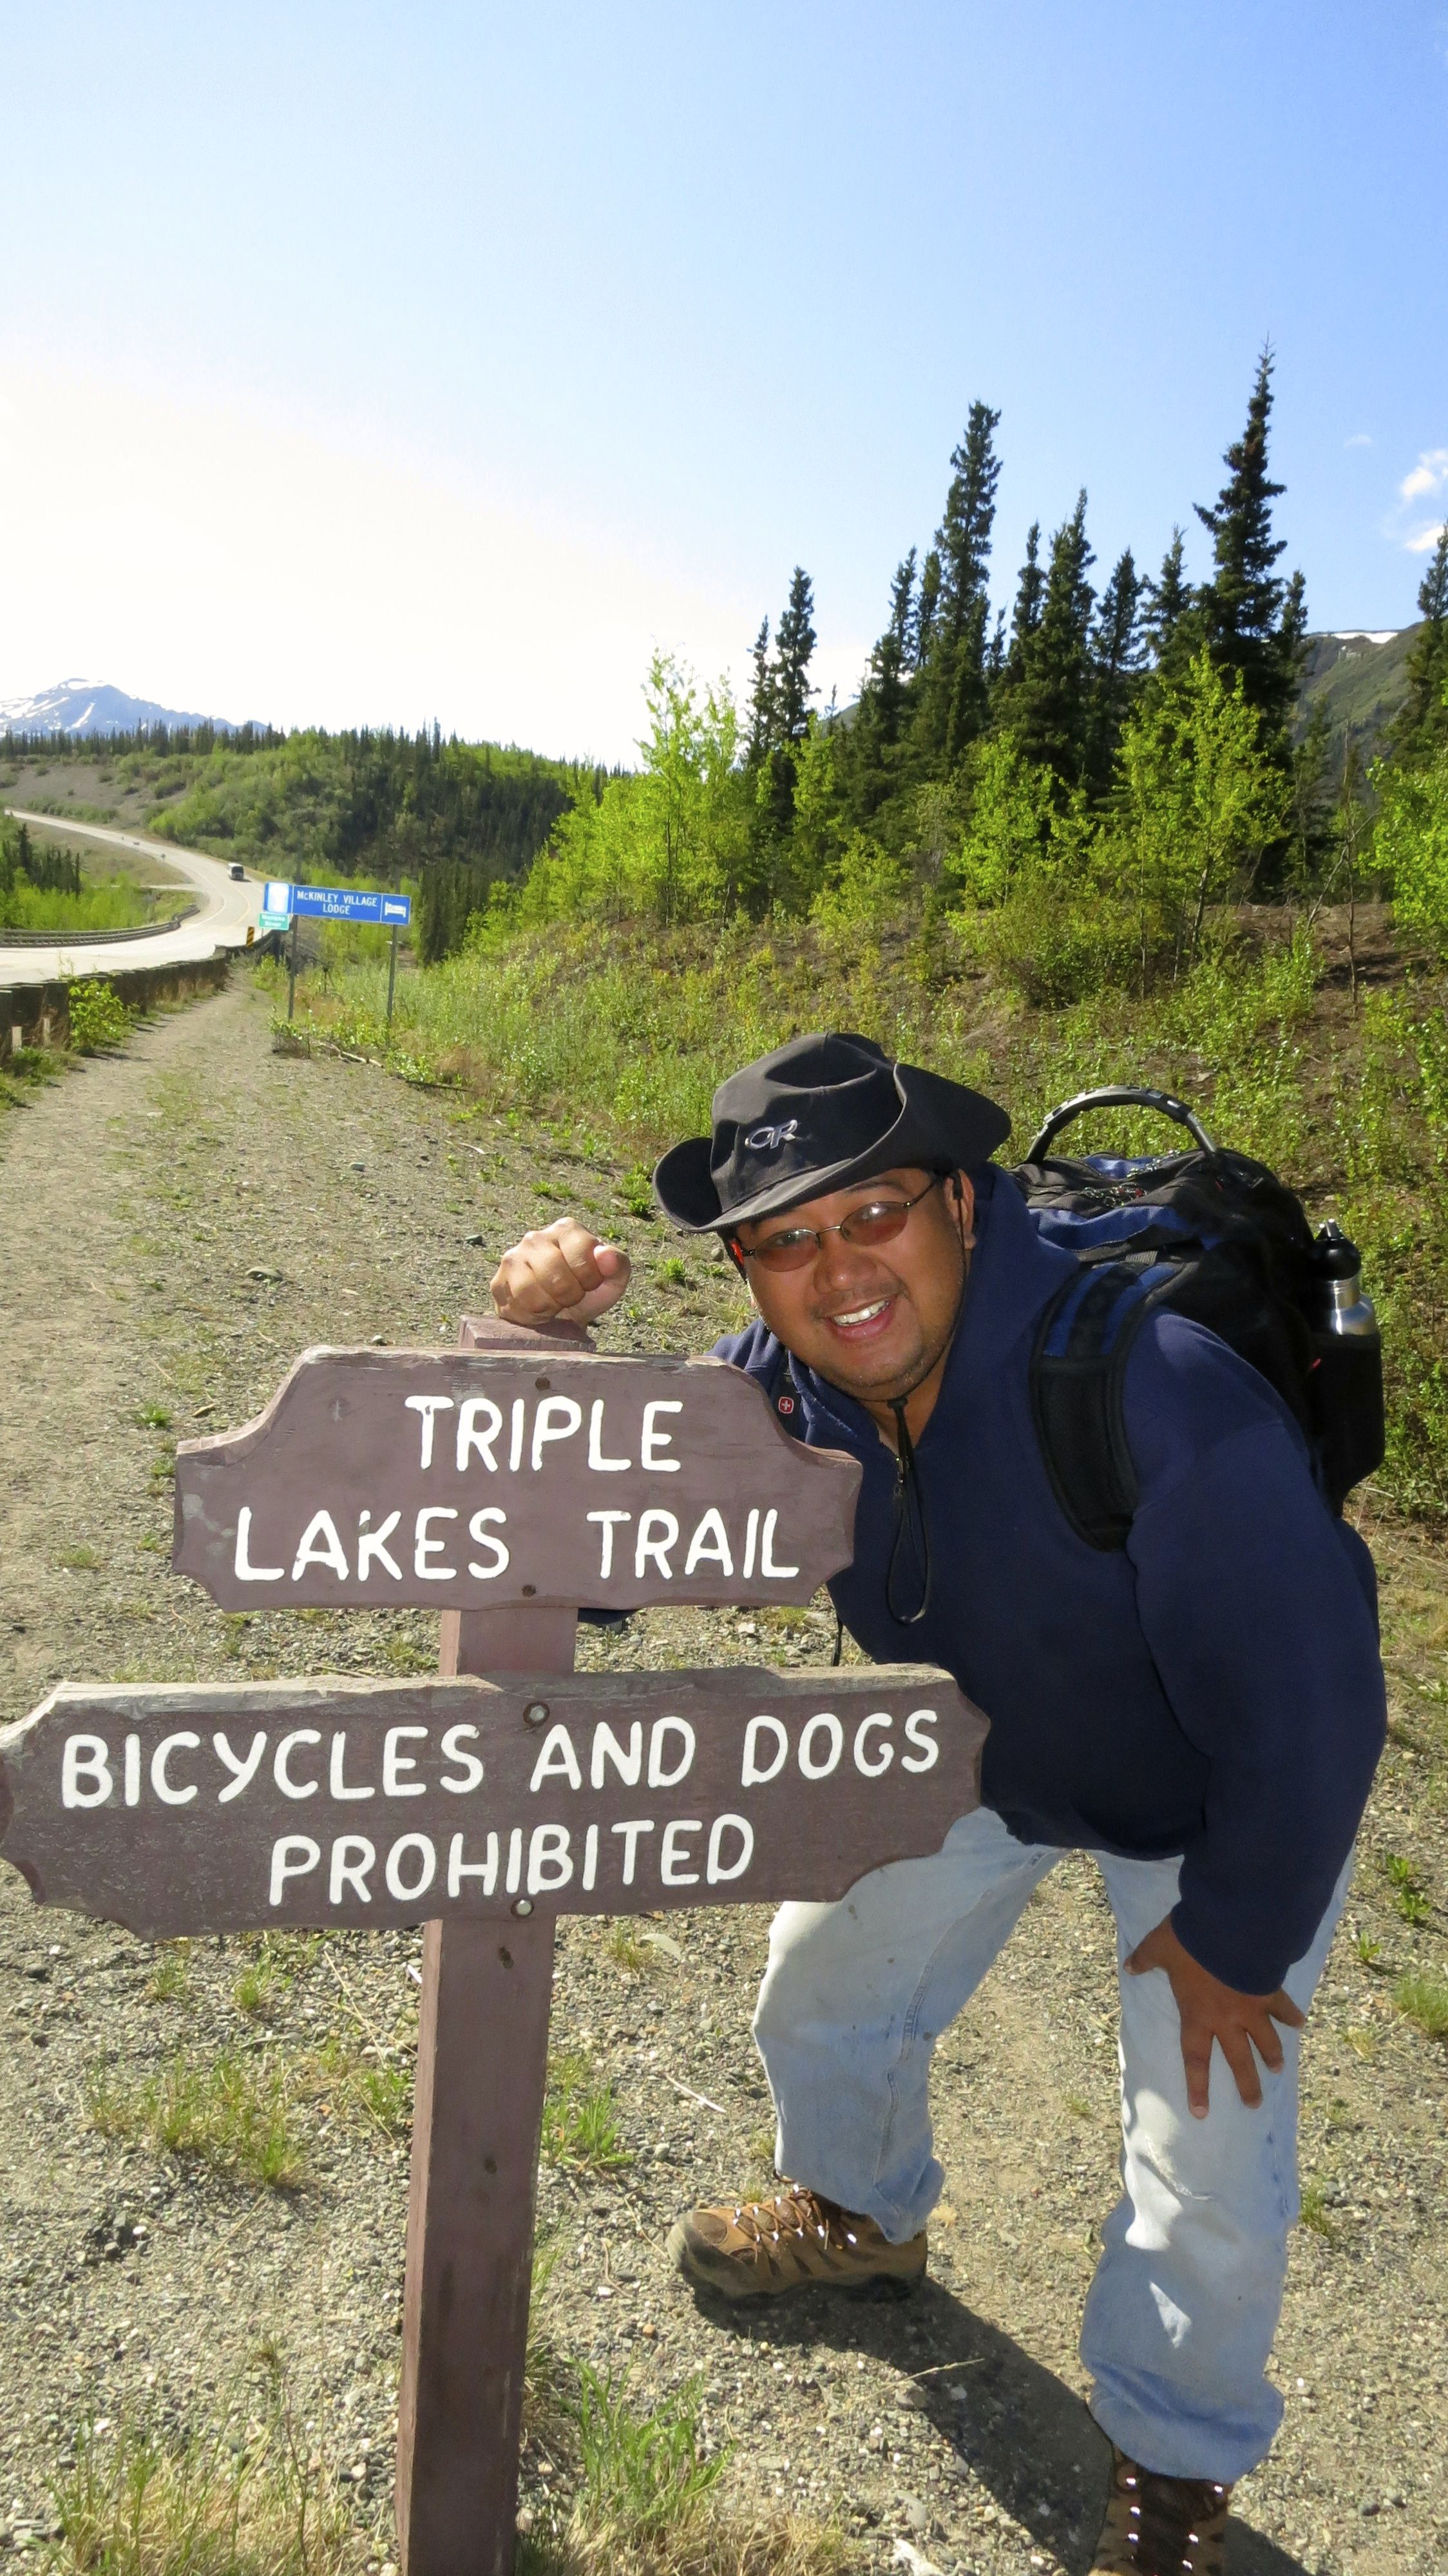 The Triple Lakes Trail  was a long 9.5 mile hike that took most of the day. Didn't think I could make it...